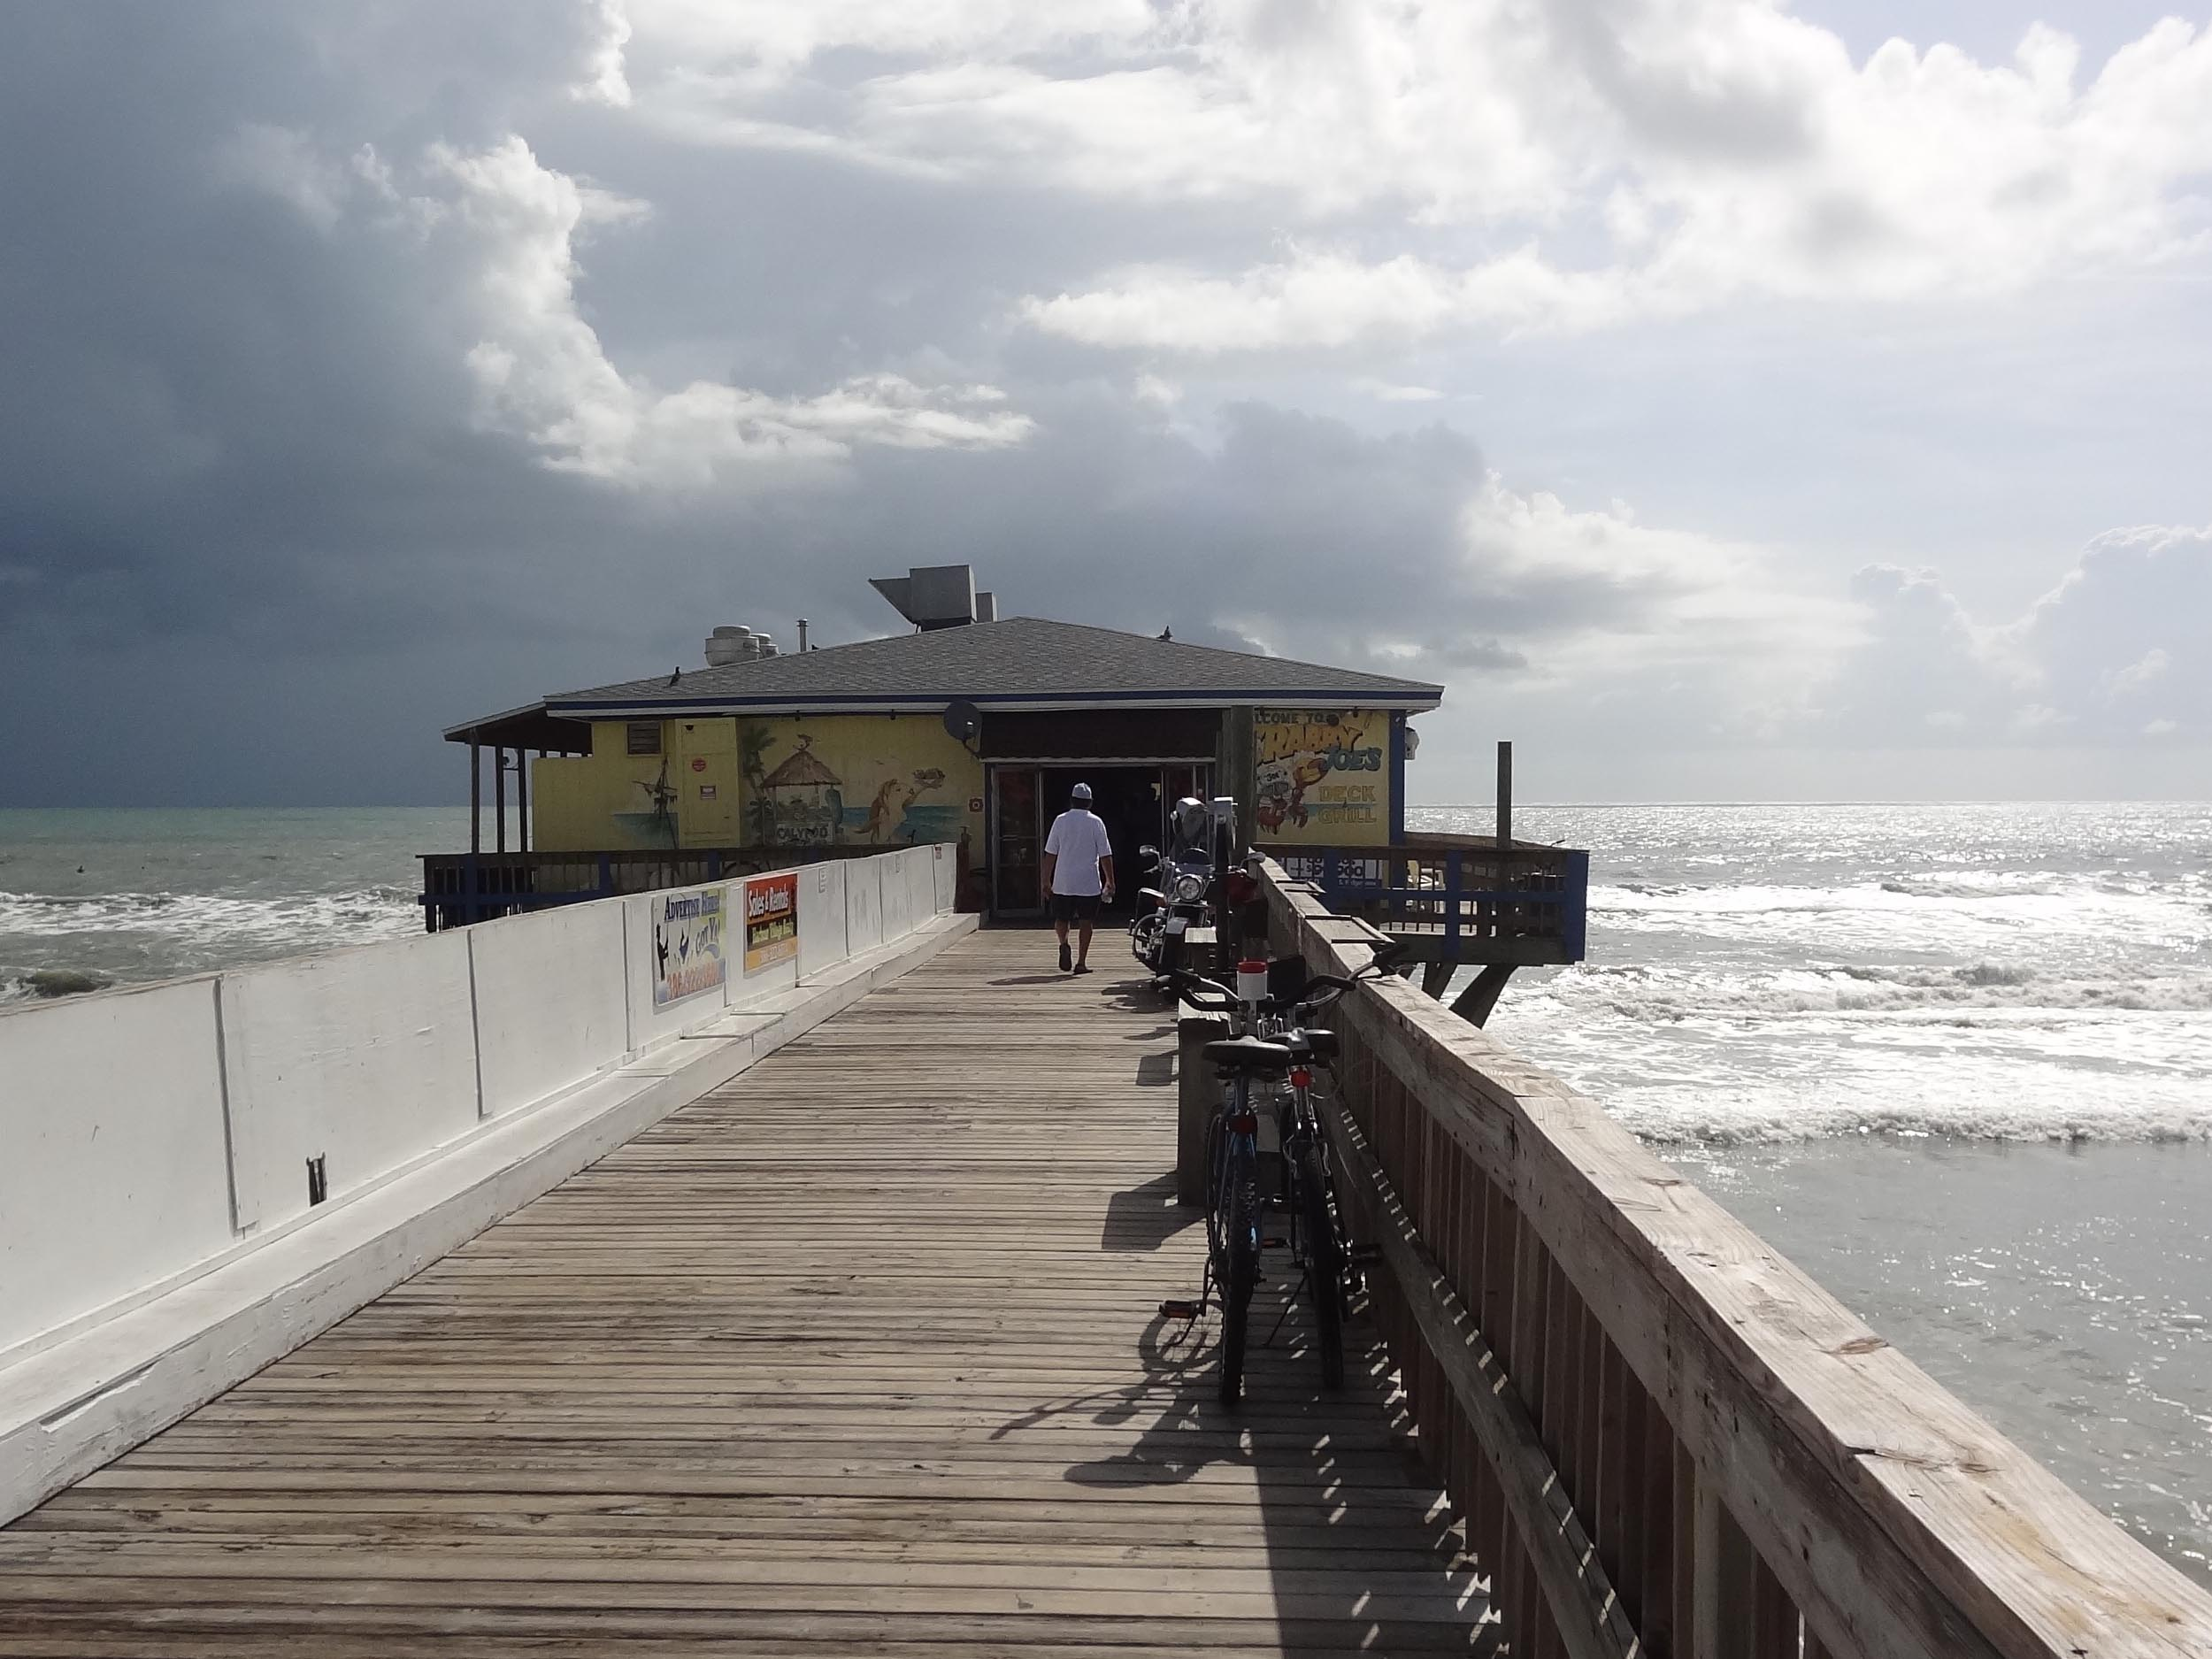 Crabby Joe's Deck and Grill Pier